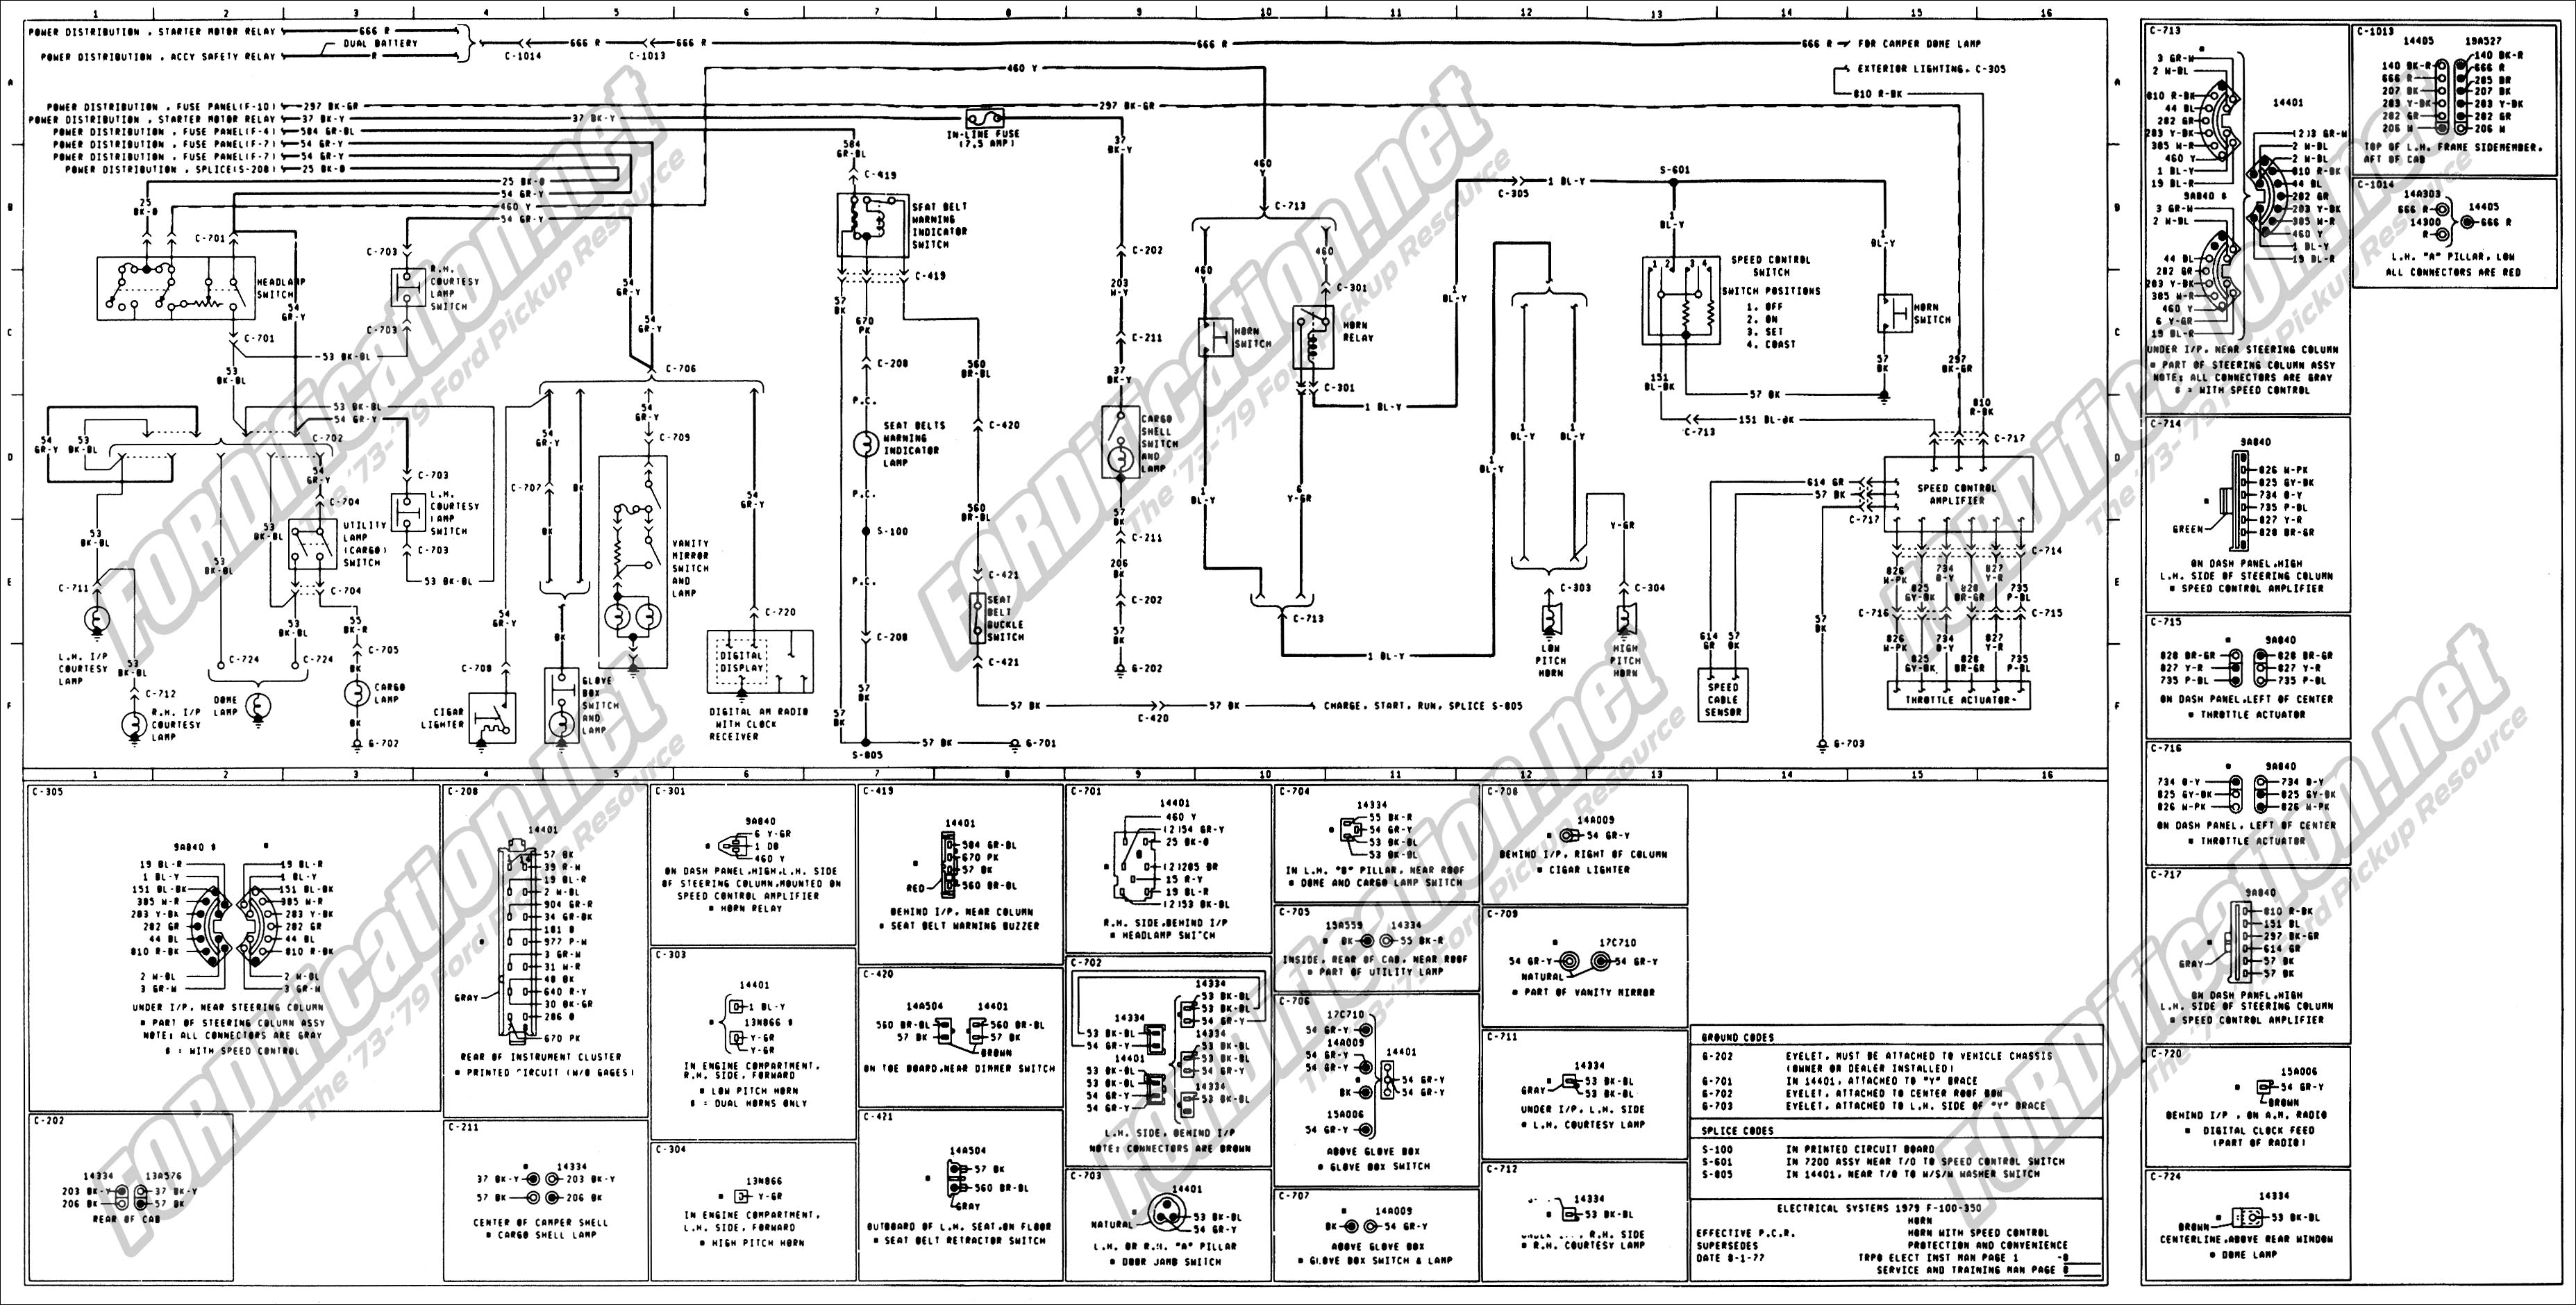 1979 ford truck wiring diagram detailed wiring diagrams  1973 1979 ford truck wiring diagrams & schematics fordification net 1958 ford truck wireing diagram under hood 1979 ford truck wiring diagram